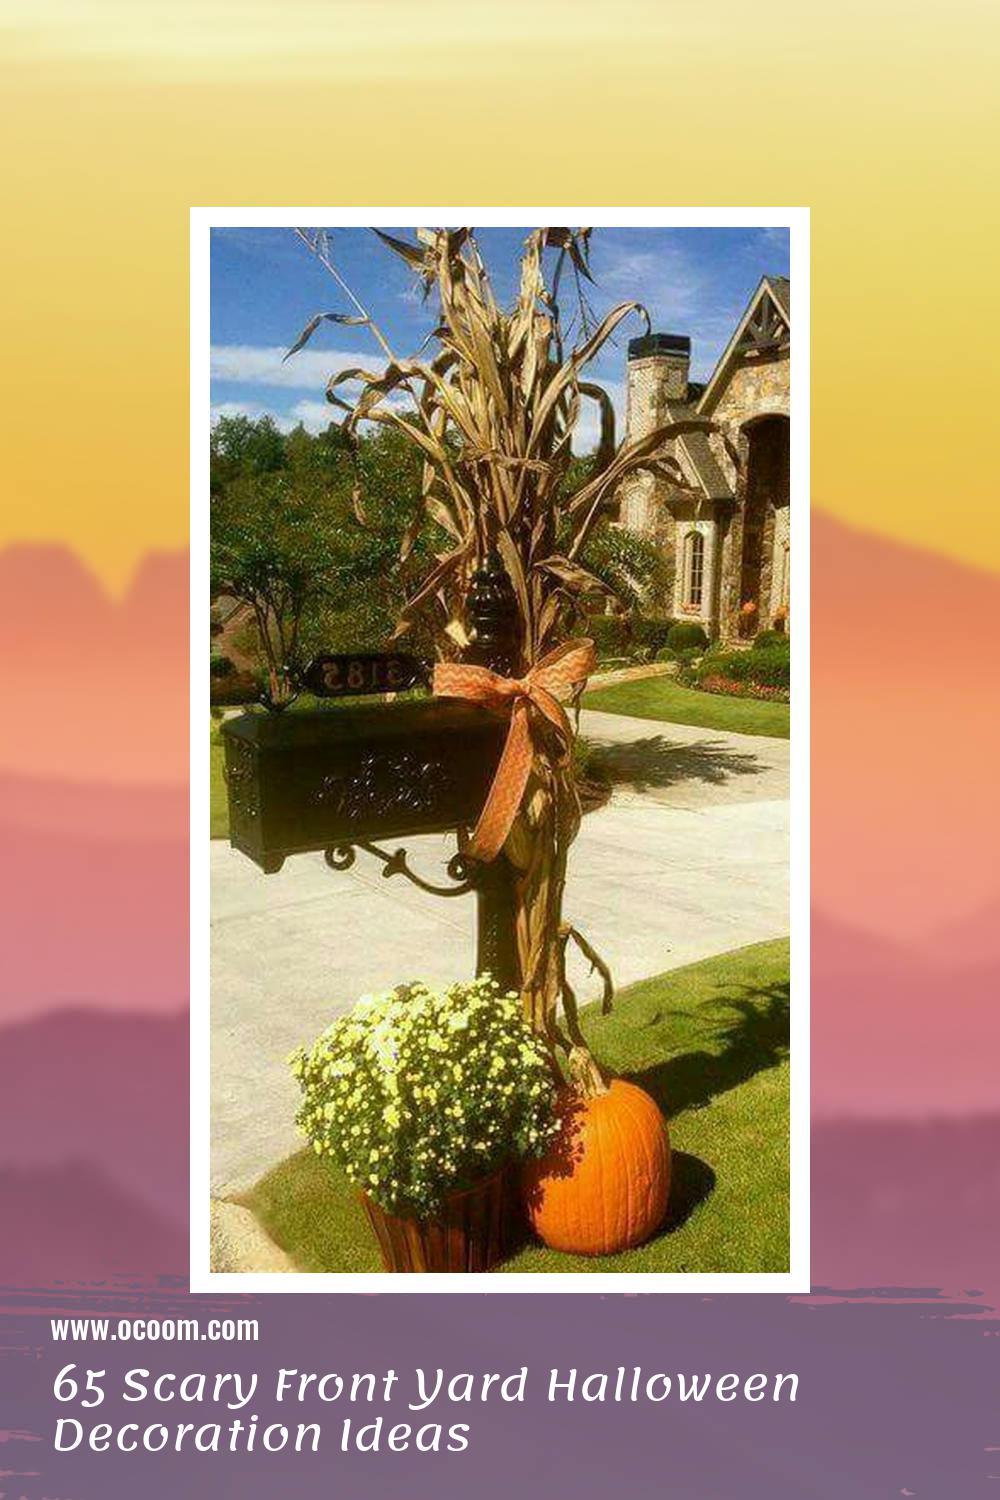 65 Scary Front Yard Halloween Decoration Ideas 4